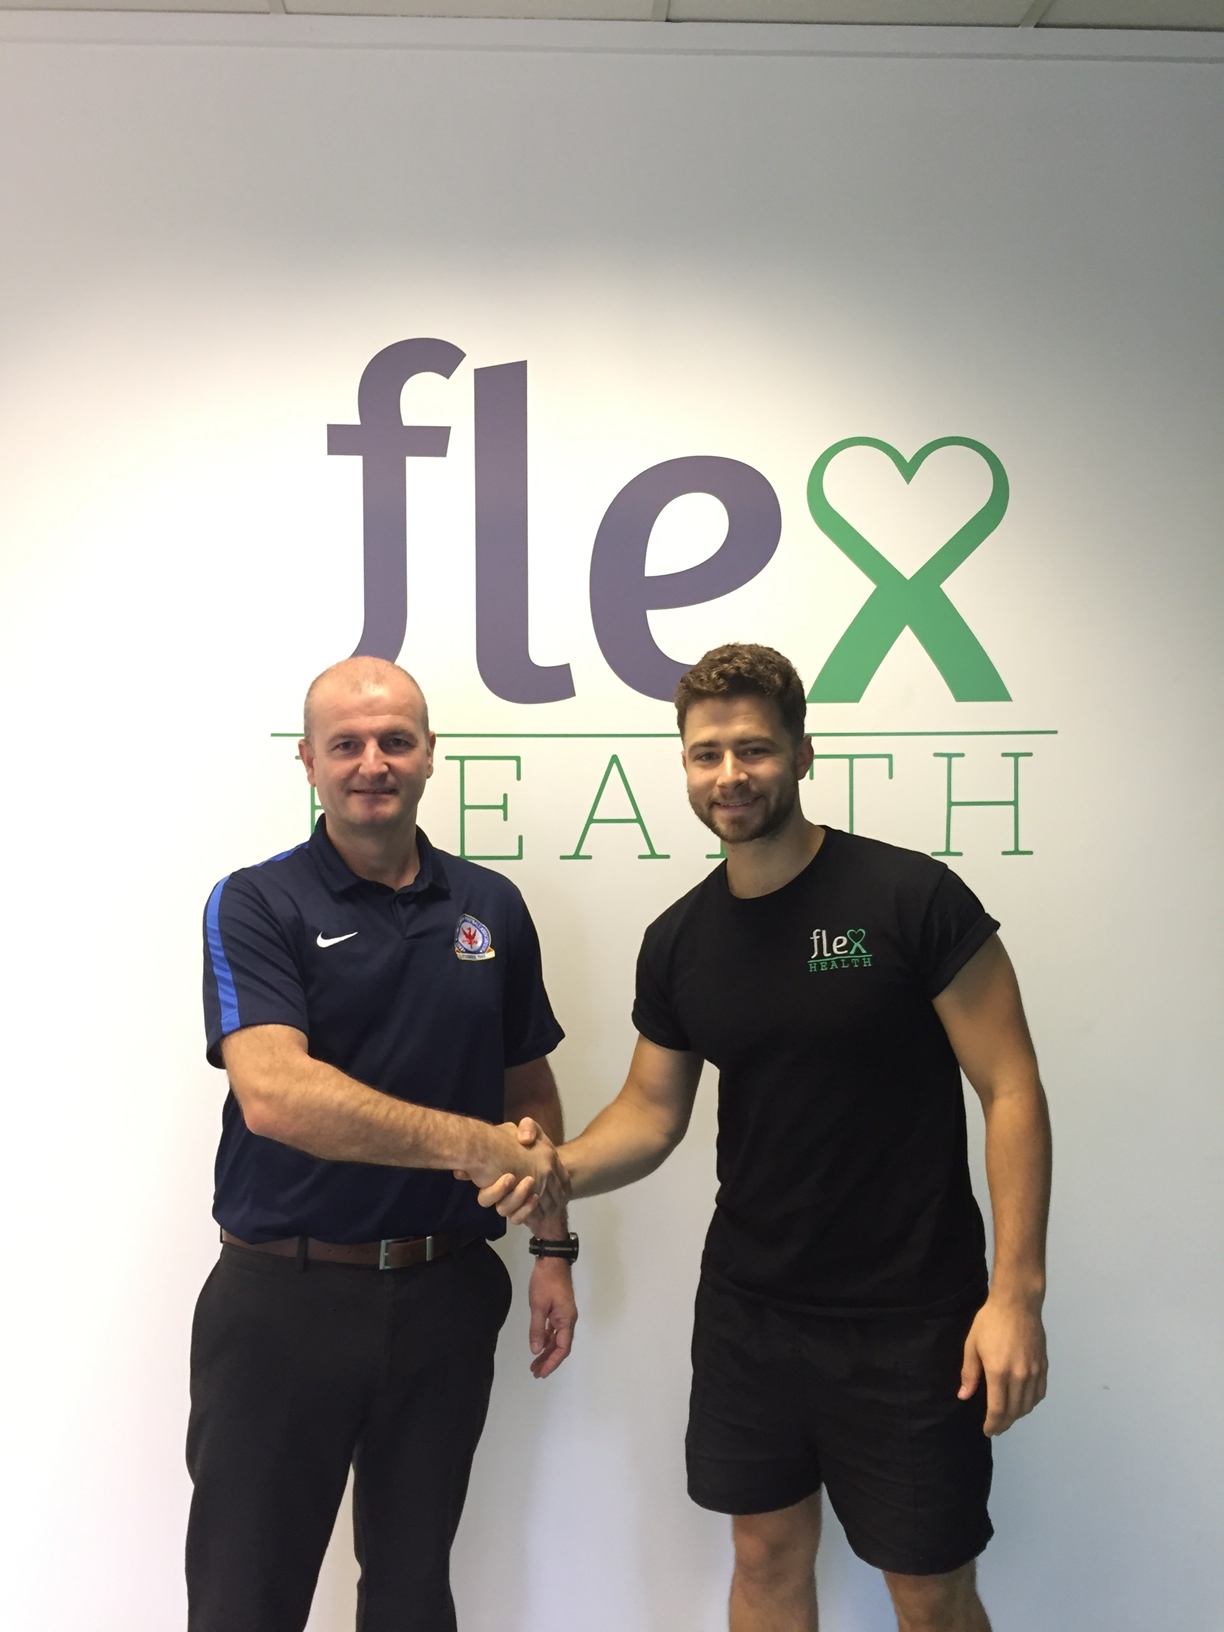 Flex Health Partnership Page - Image